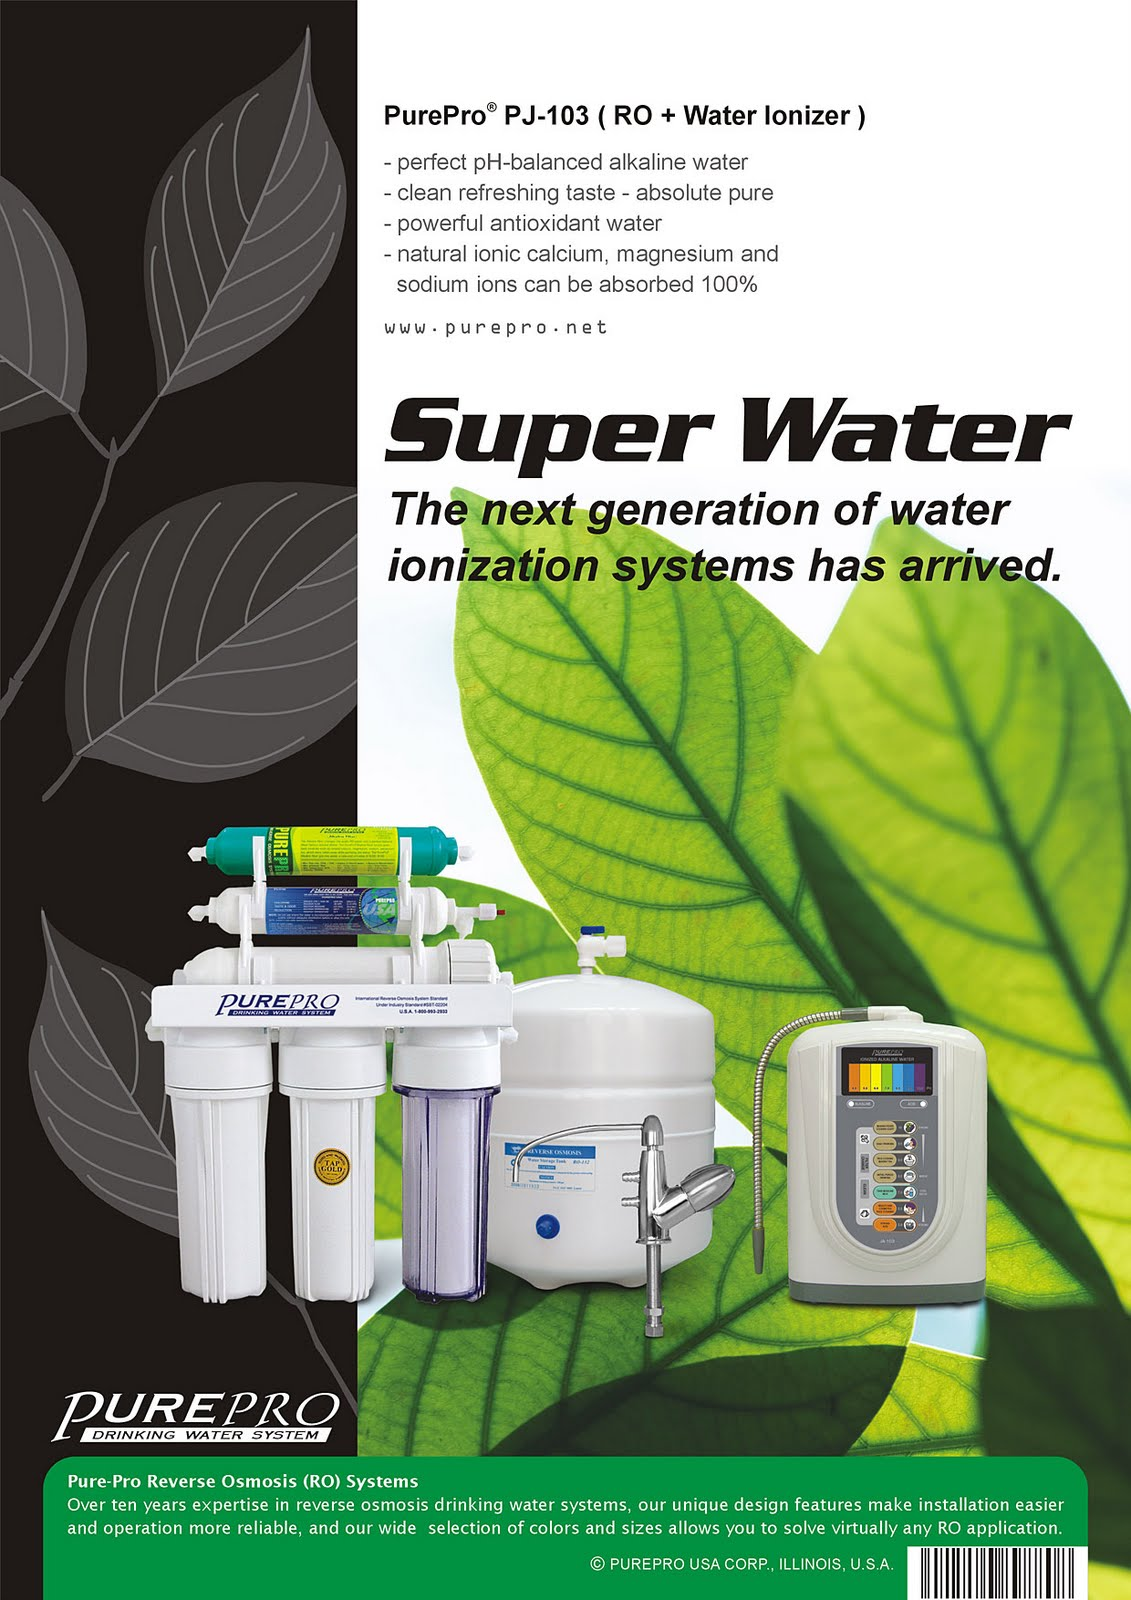 PurePro Perfect Water PJ-103 Reverse Osmosis + Water Ionizer Water Filtration System